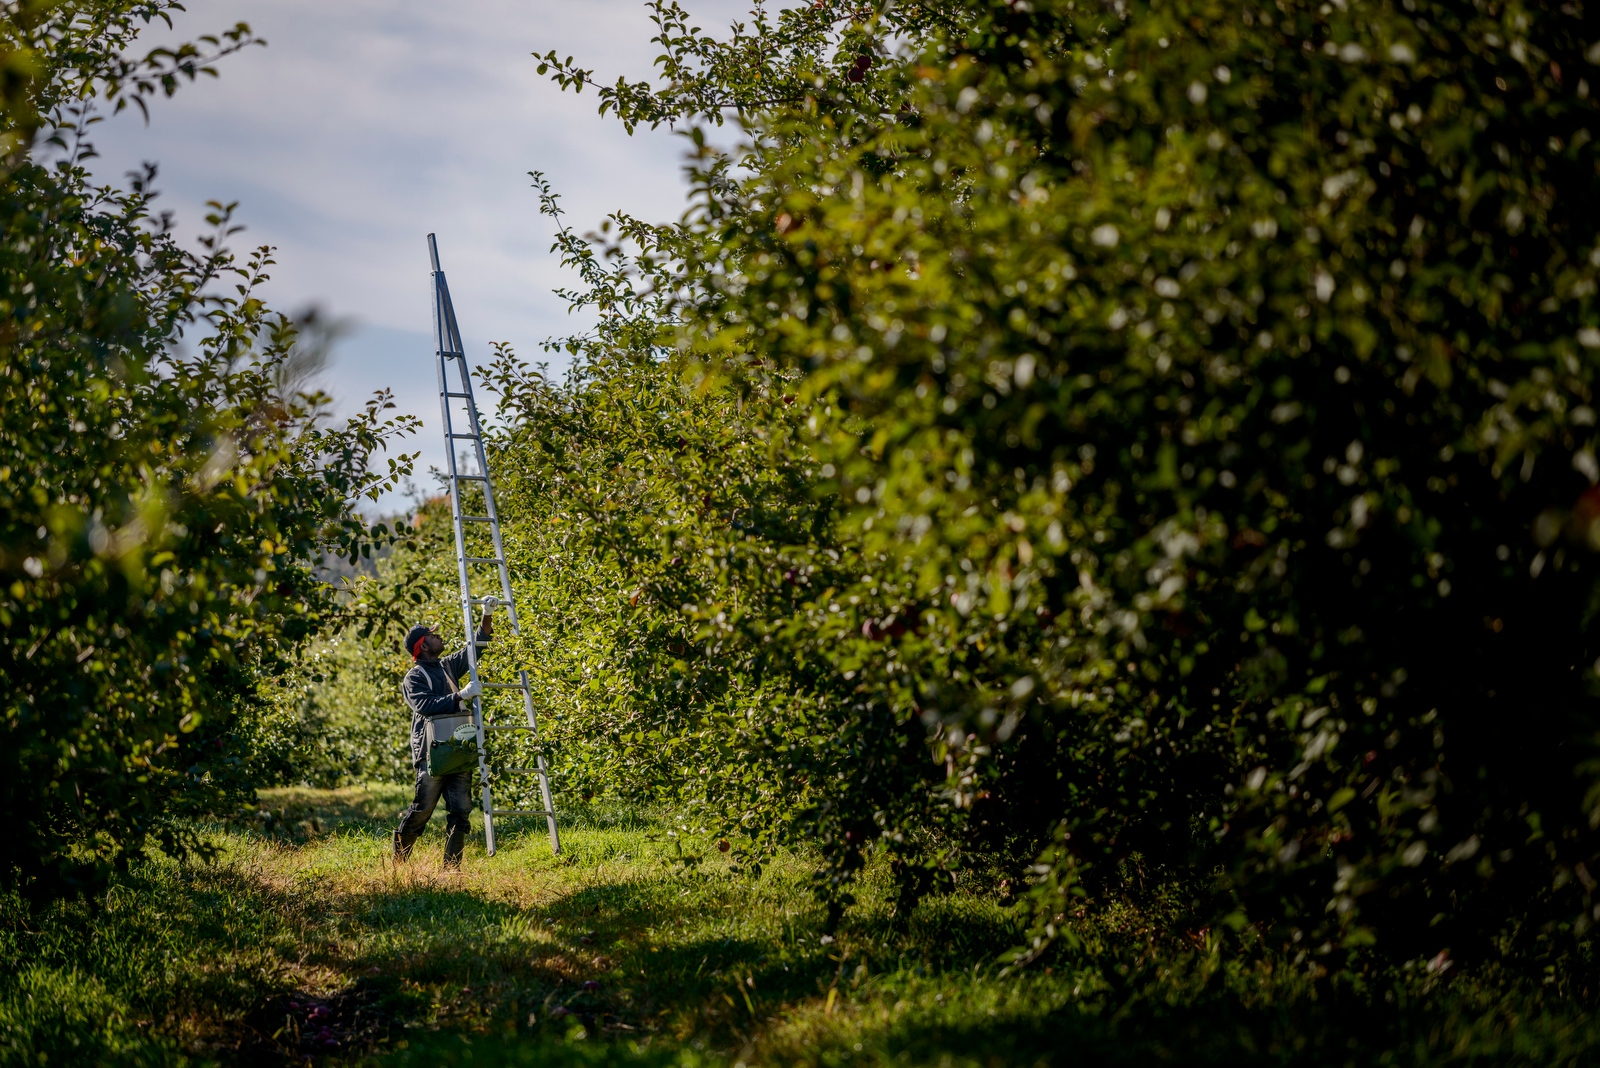 A Jamaican apple picker sets an apple ladder to pick apples at Sunrise Orchards, Cornwall, Vermont.